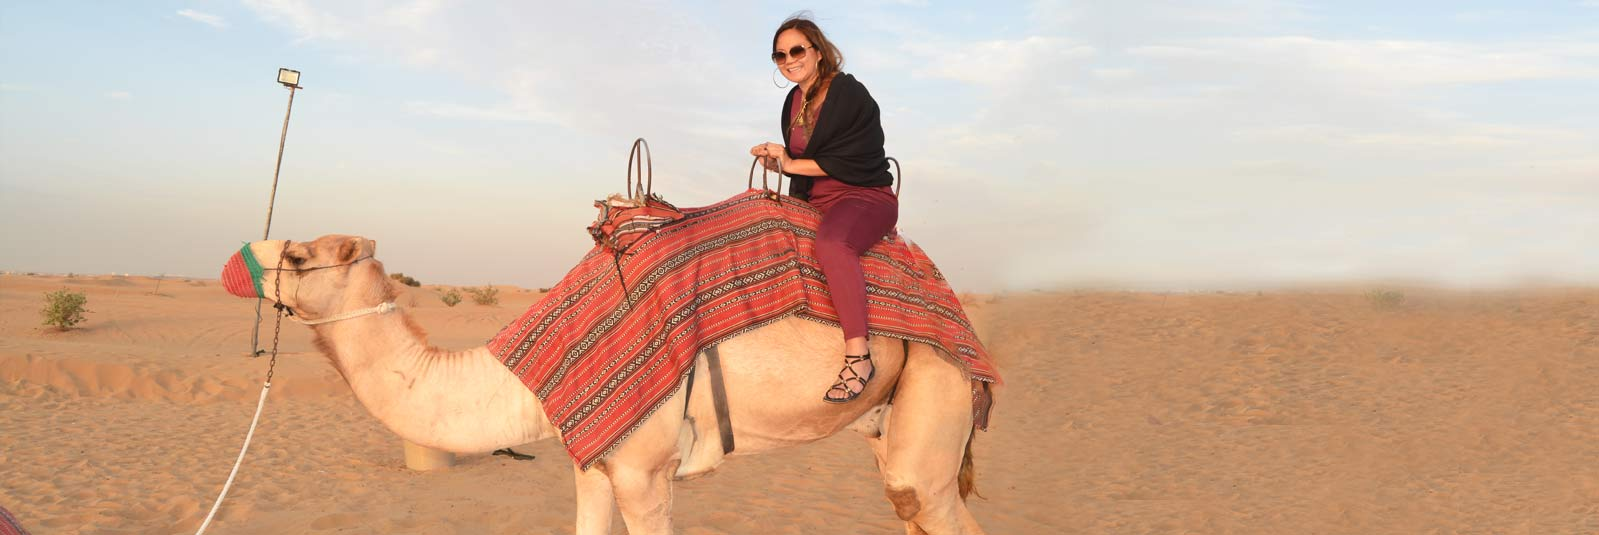 Camel-Ride-in-the-desert.jpg